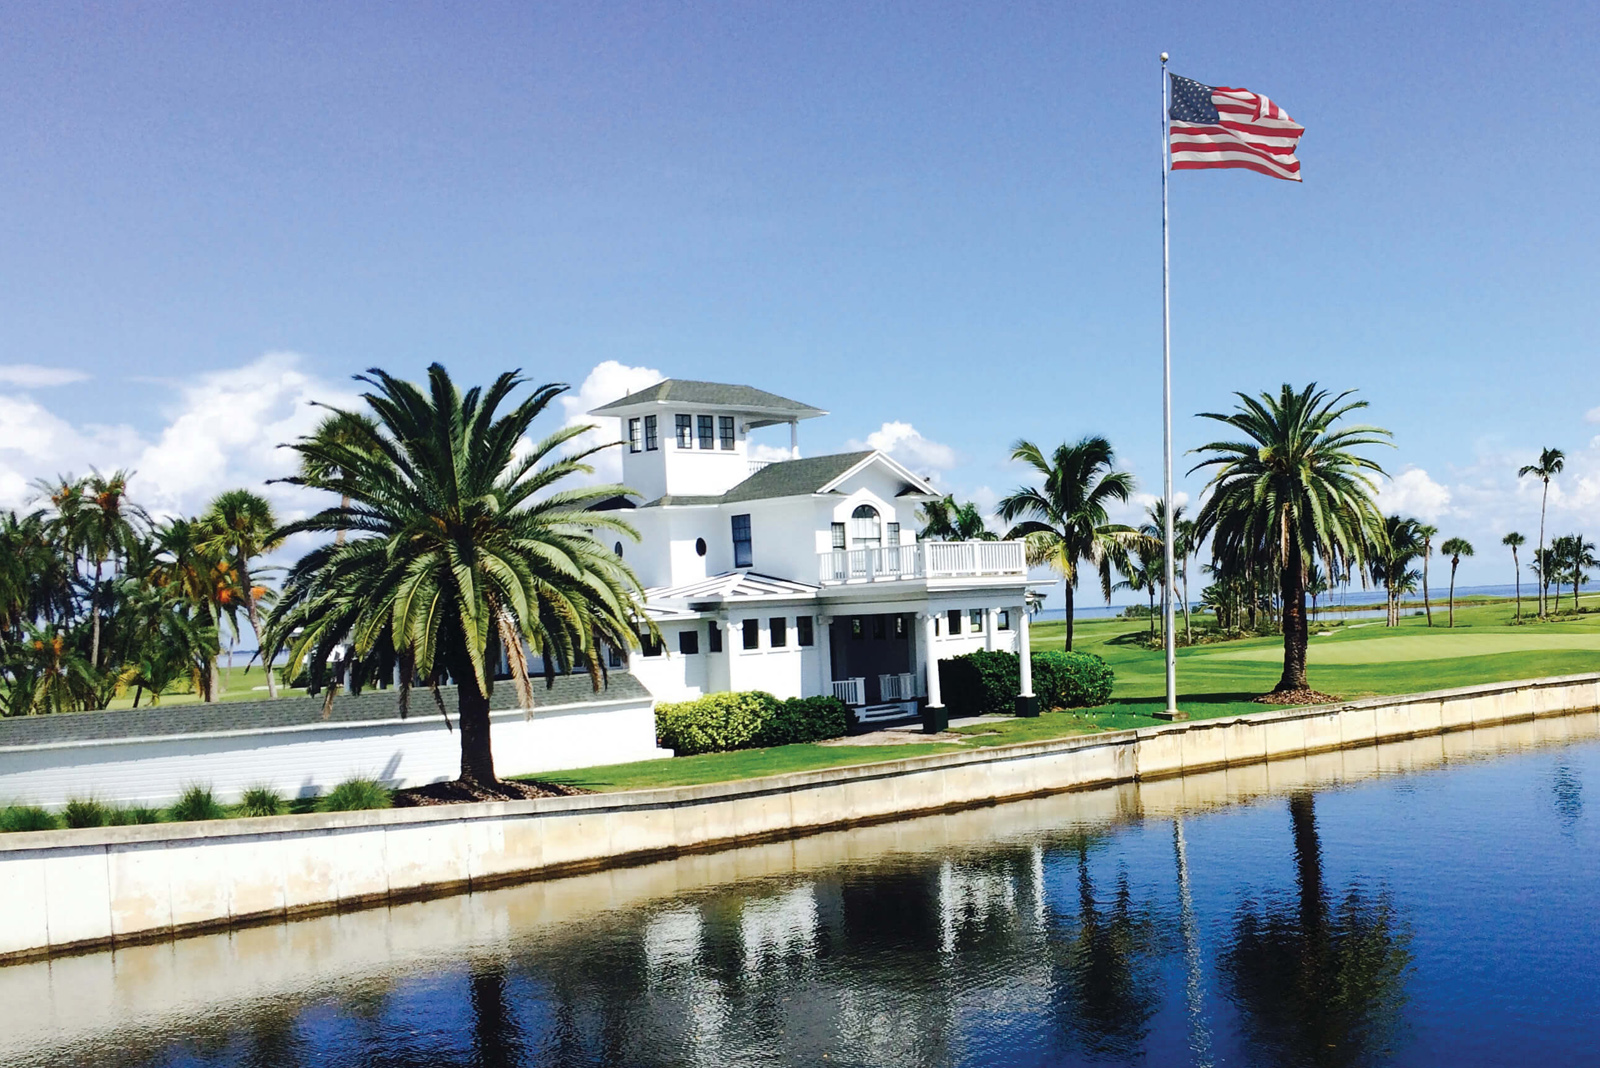 Outside shot of a building on the golf course with an American flag flying